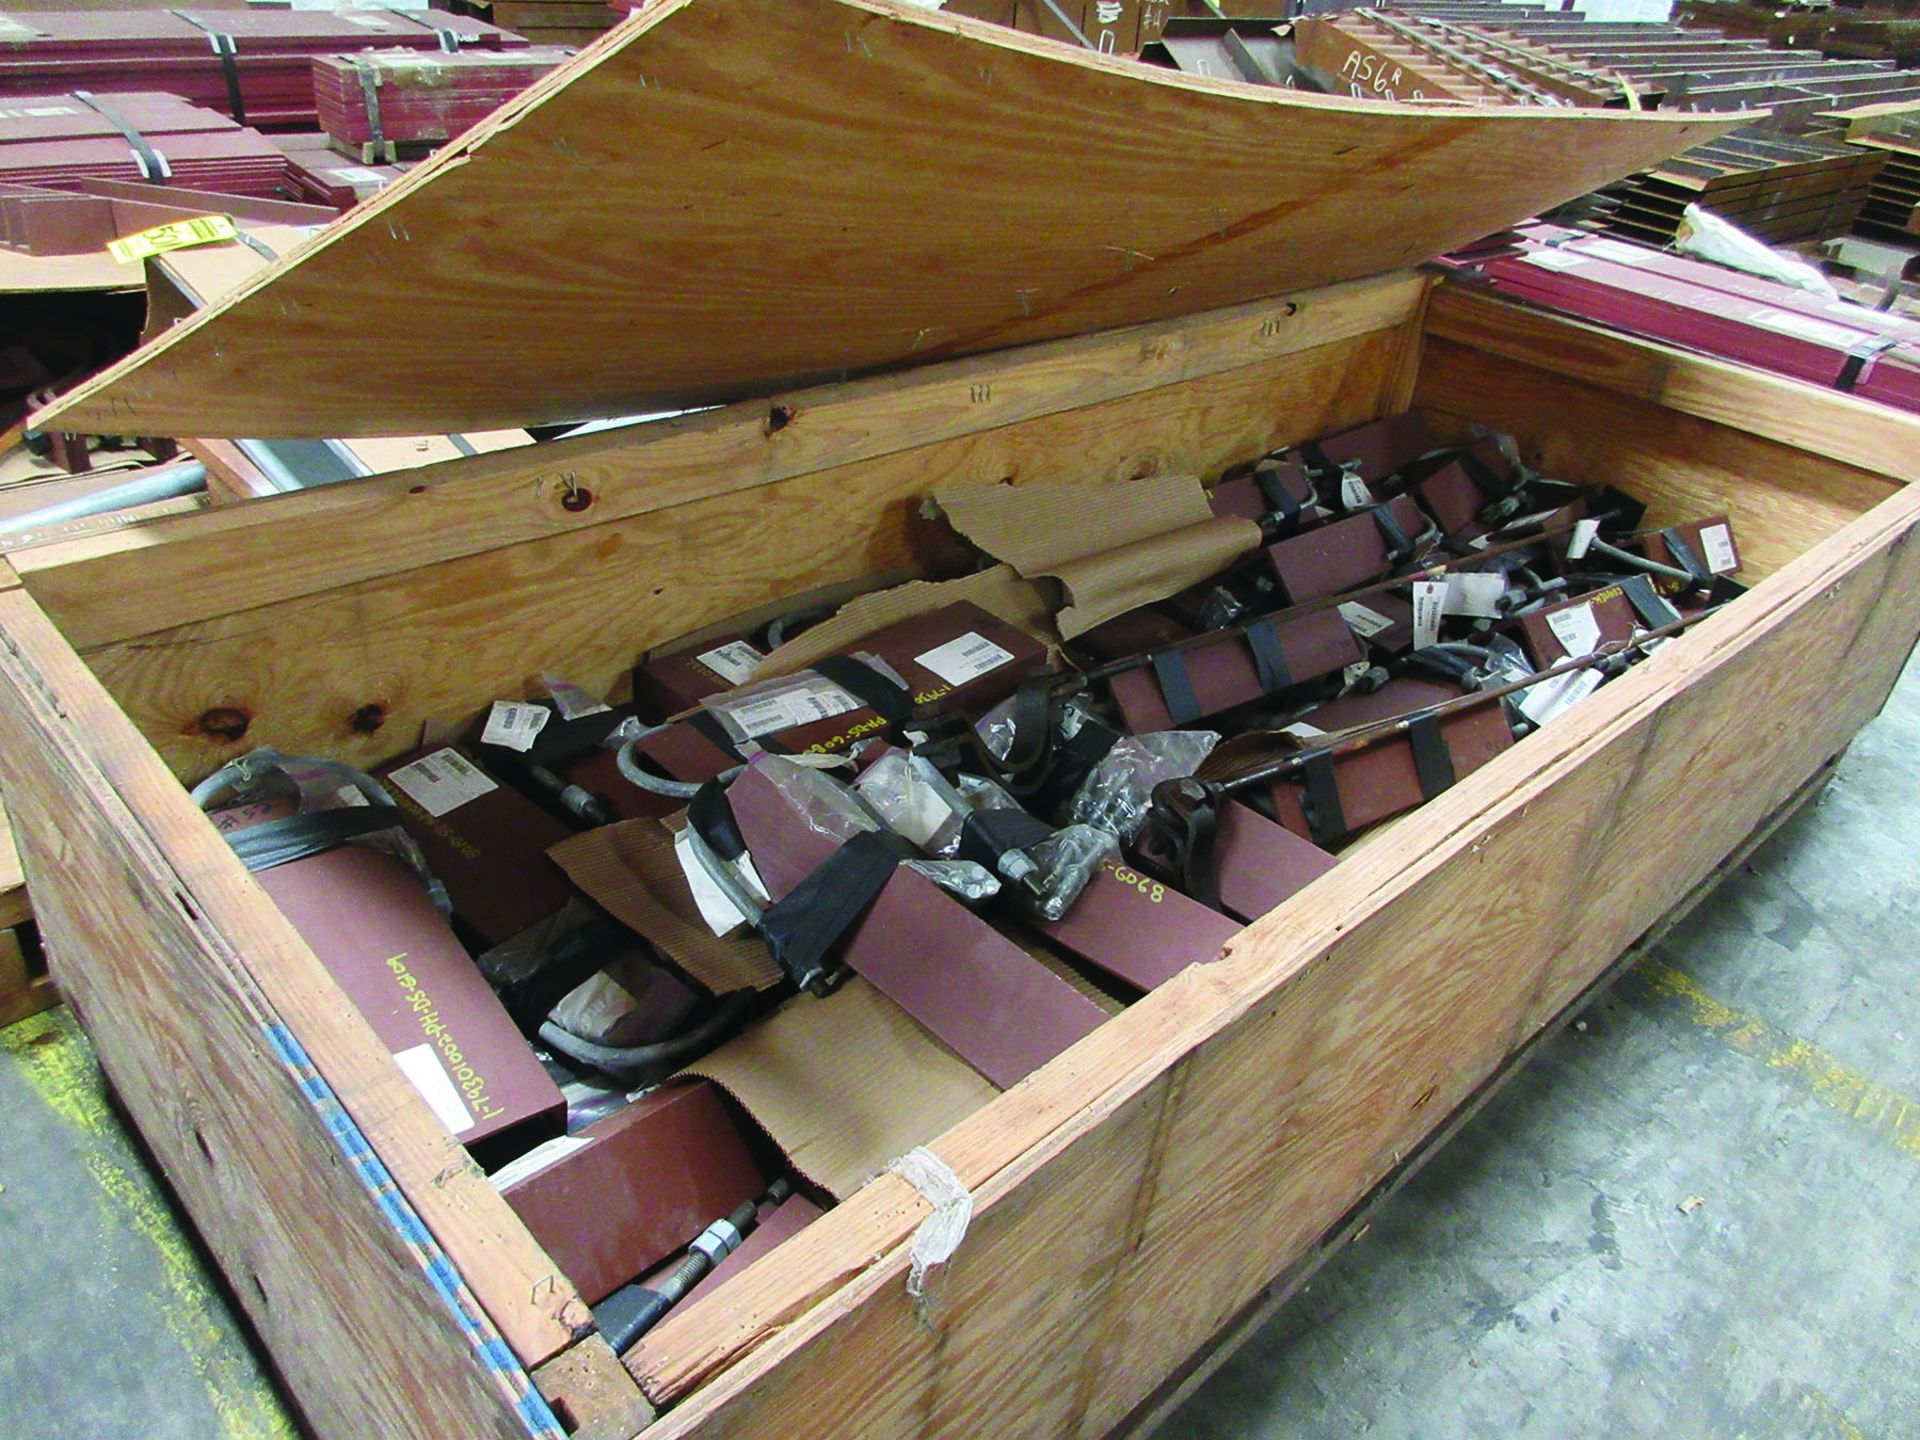 LARGE LOT OF STRUCTURAL STEEL & SPRING CANS, ANGLE IRON, PLATE BRACKETS, BRACING, GRID C5 - Image 15 of 21